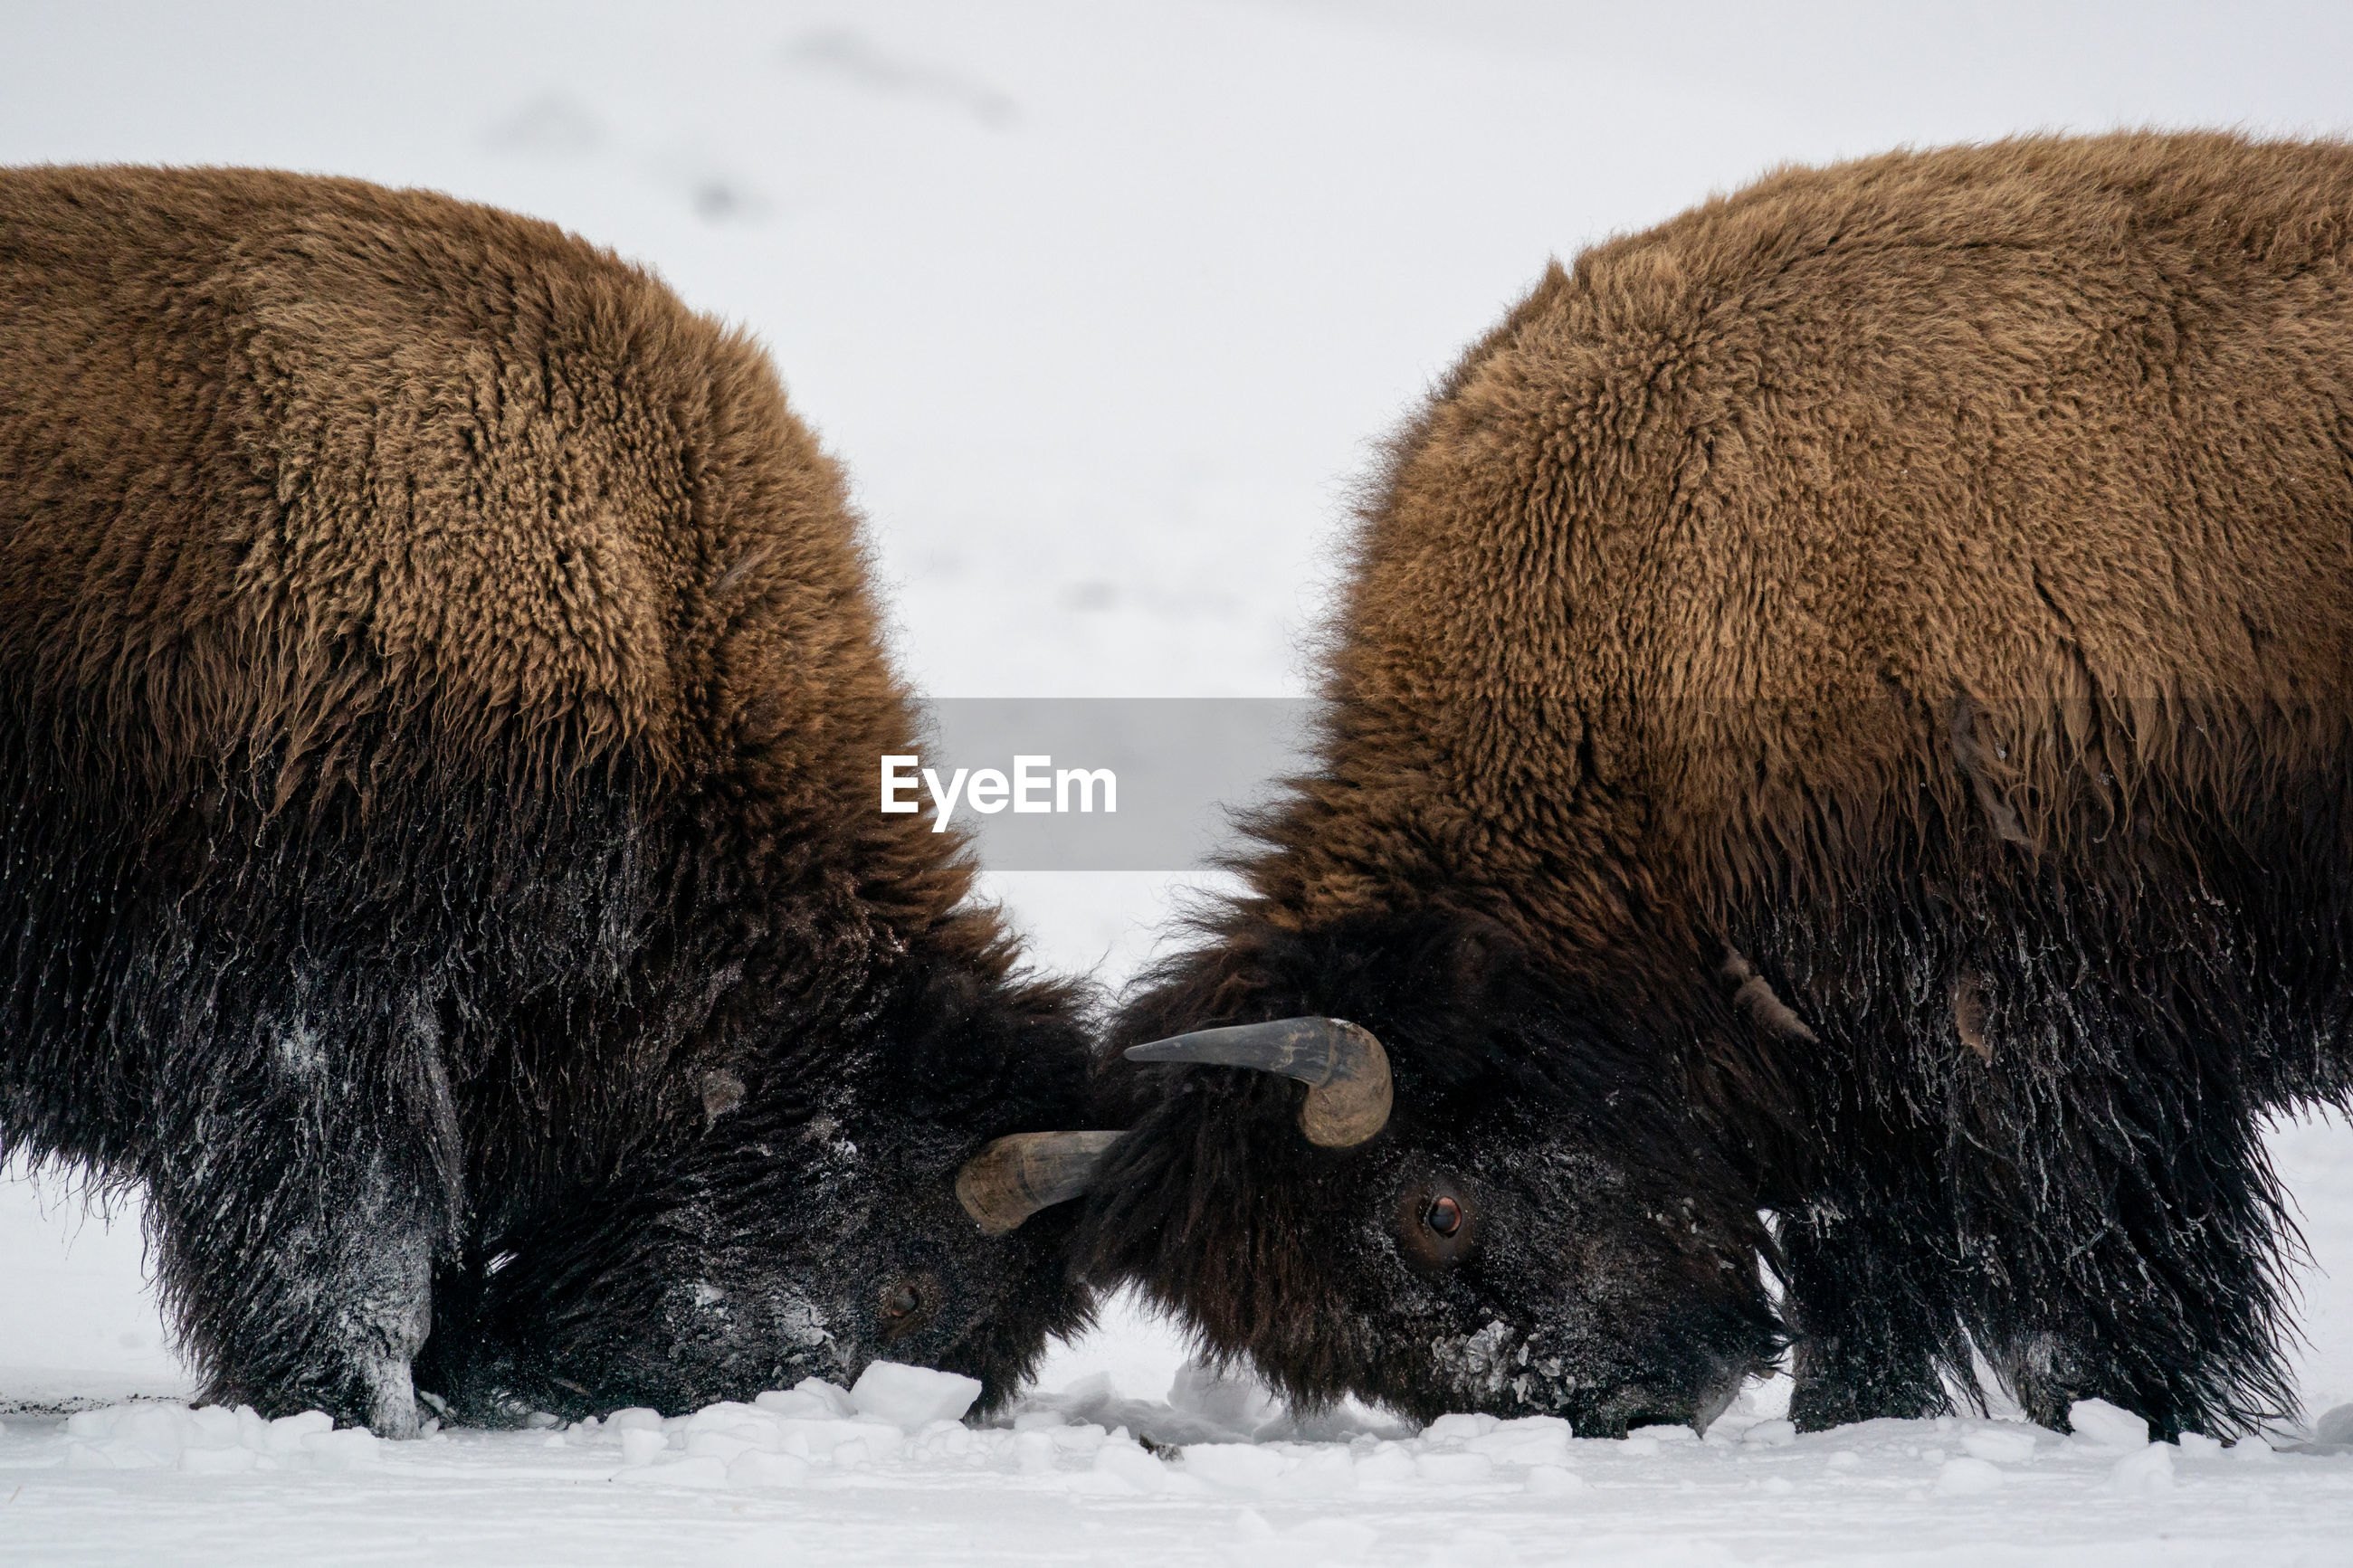 Strong wood bisons, bison bonasus, fighting on snow